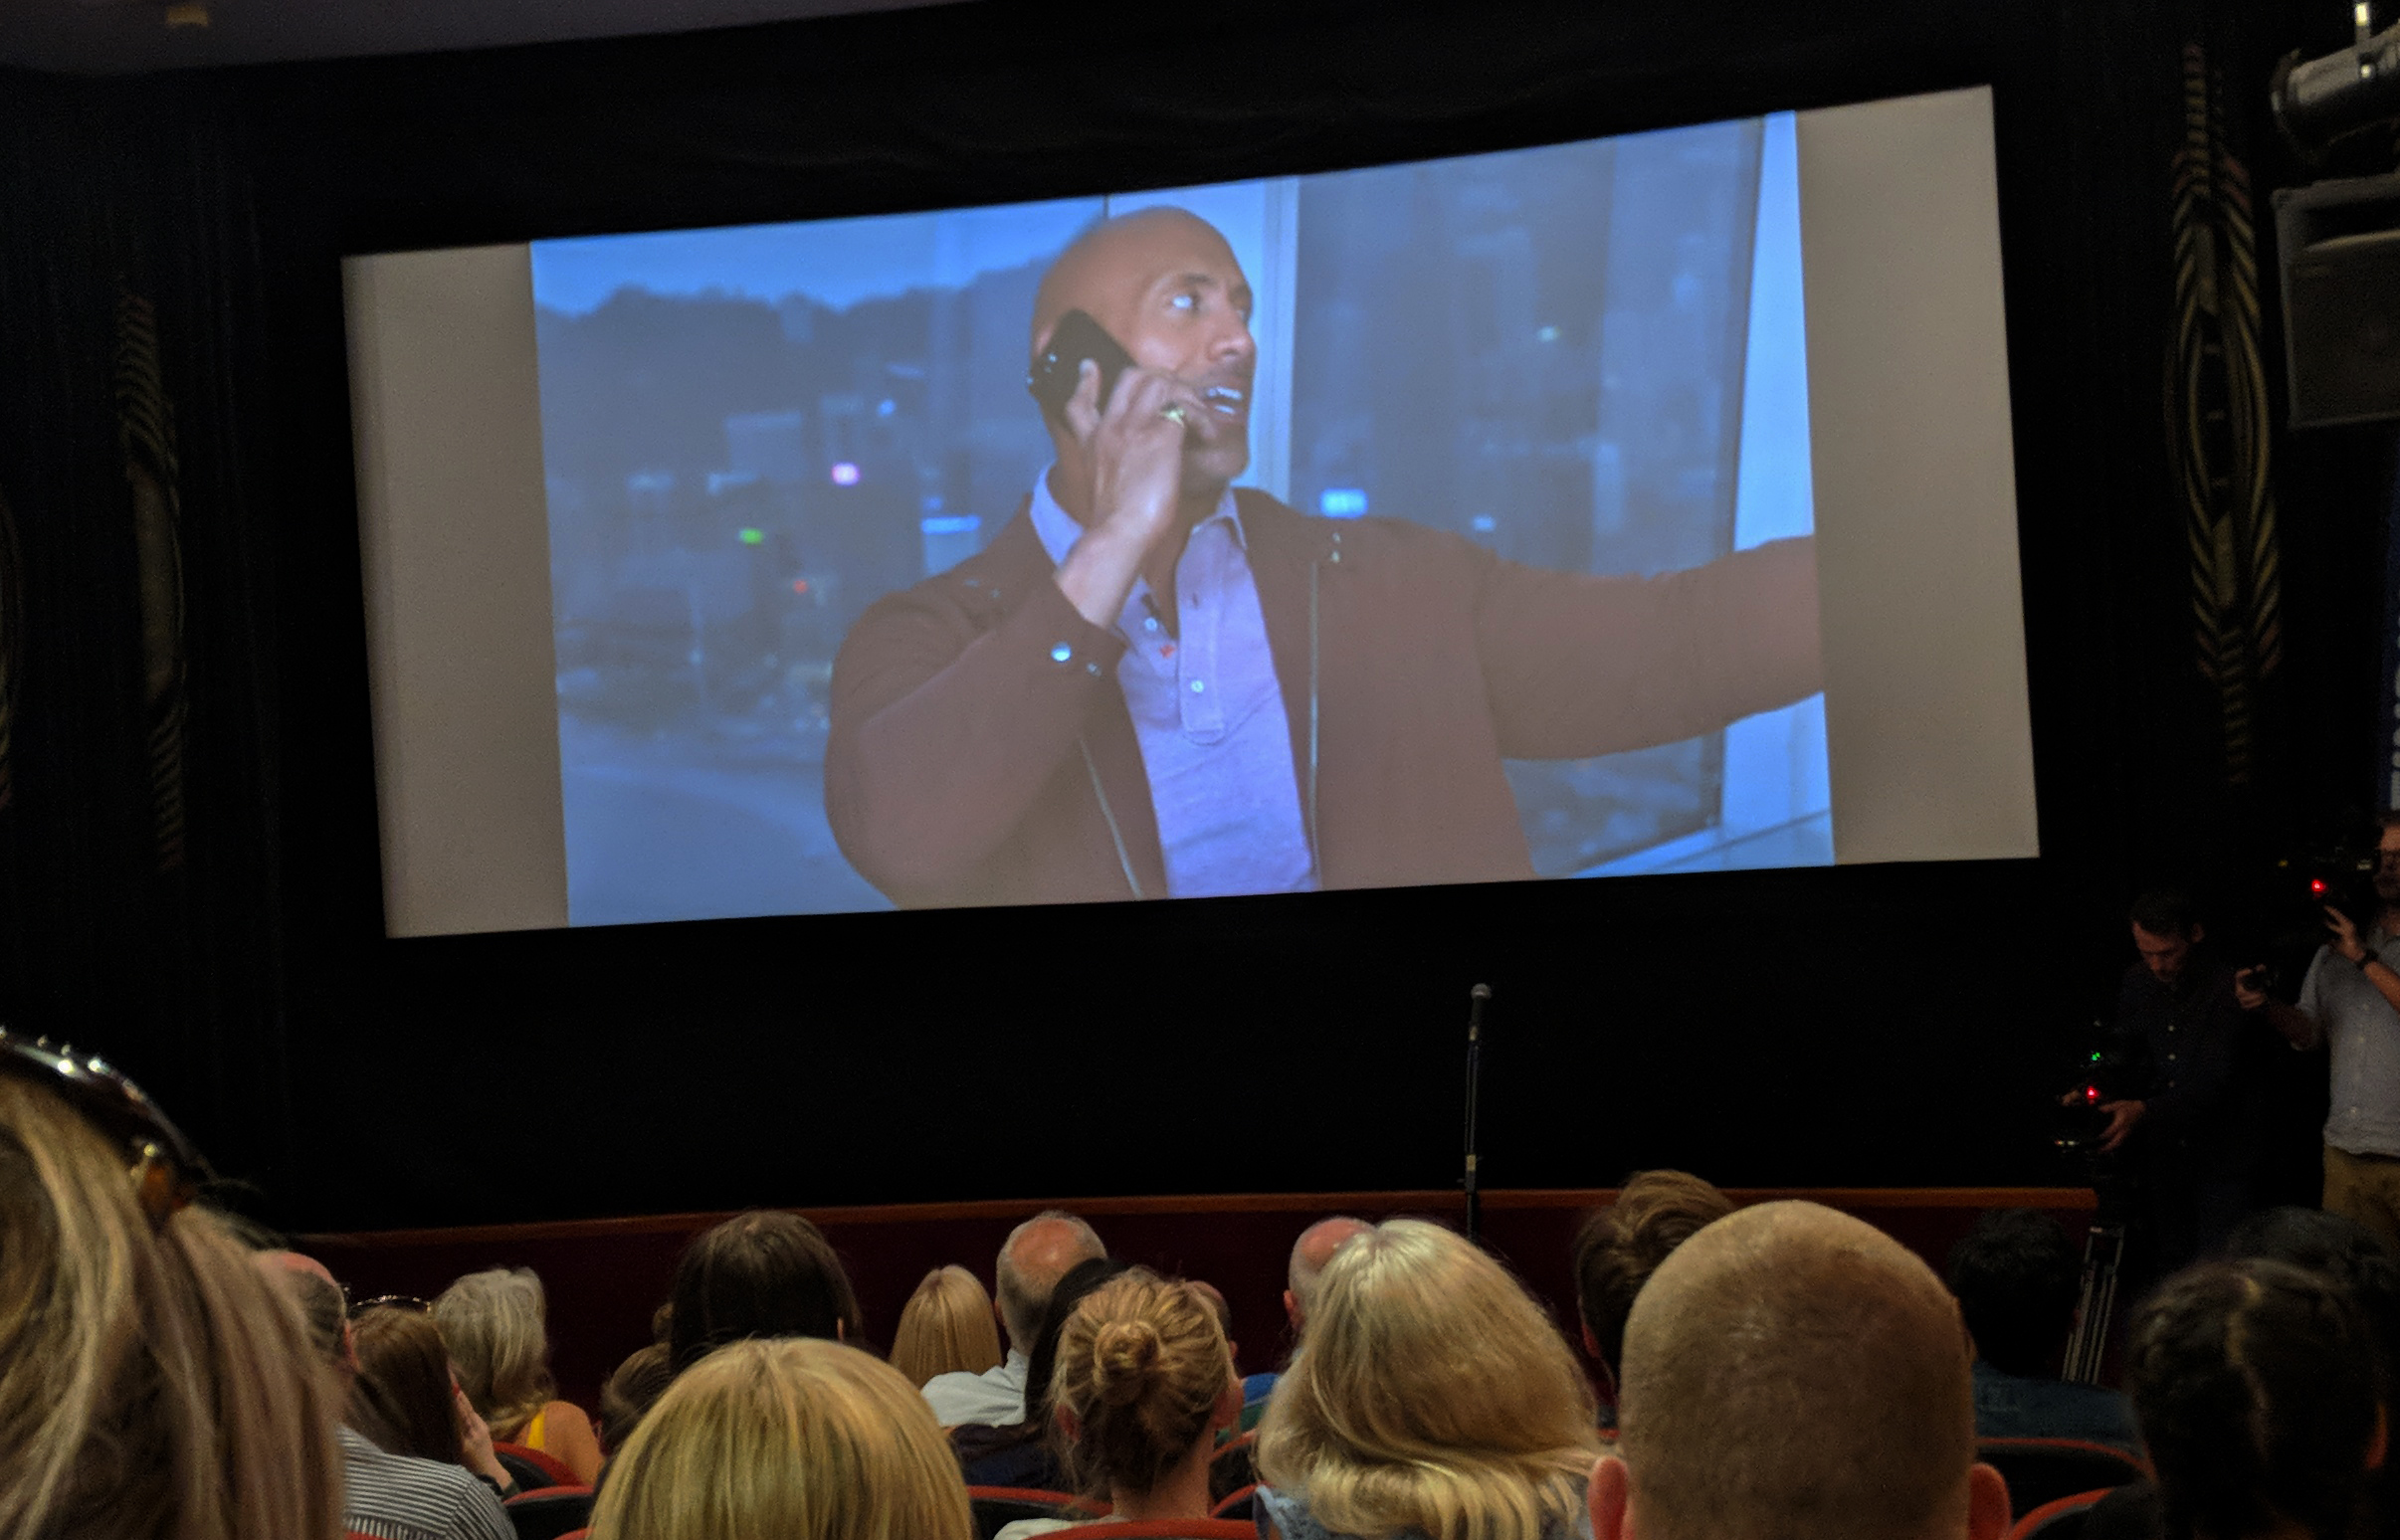 The Rock surprises guests at the screening event (Finding Your Feet)